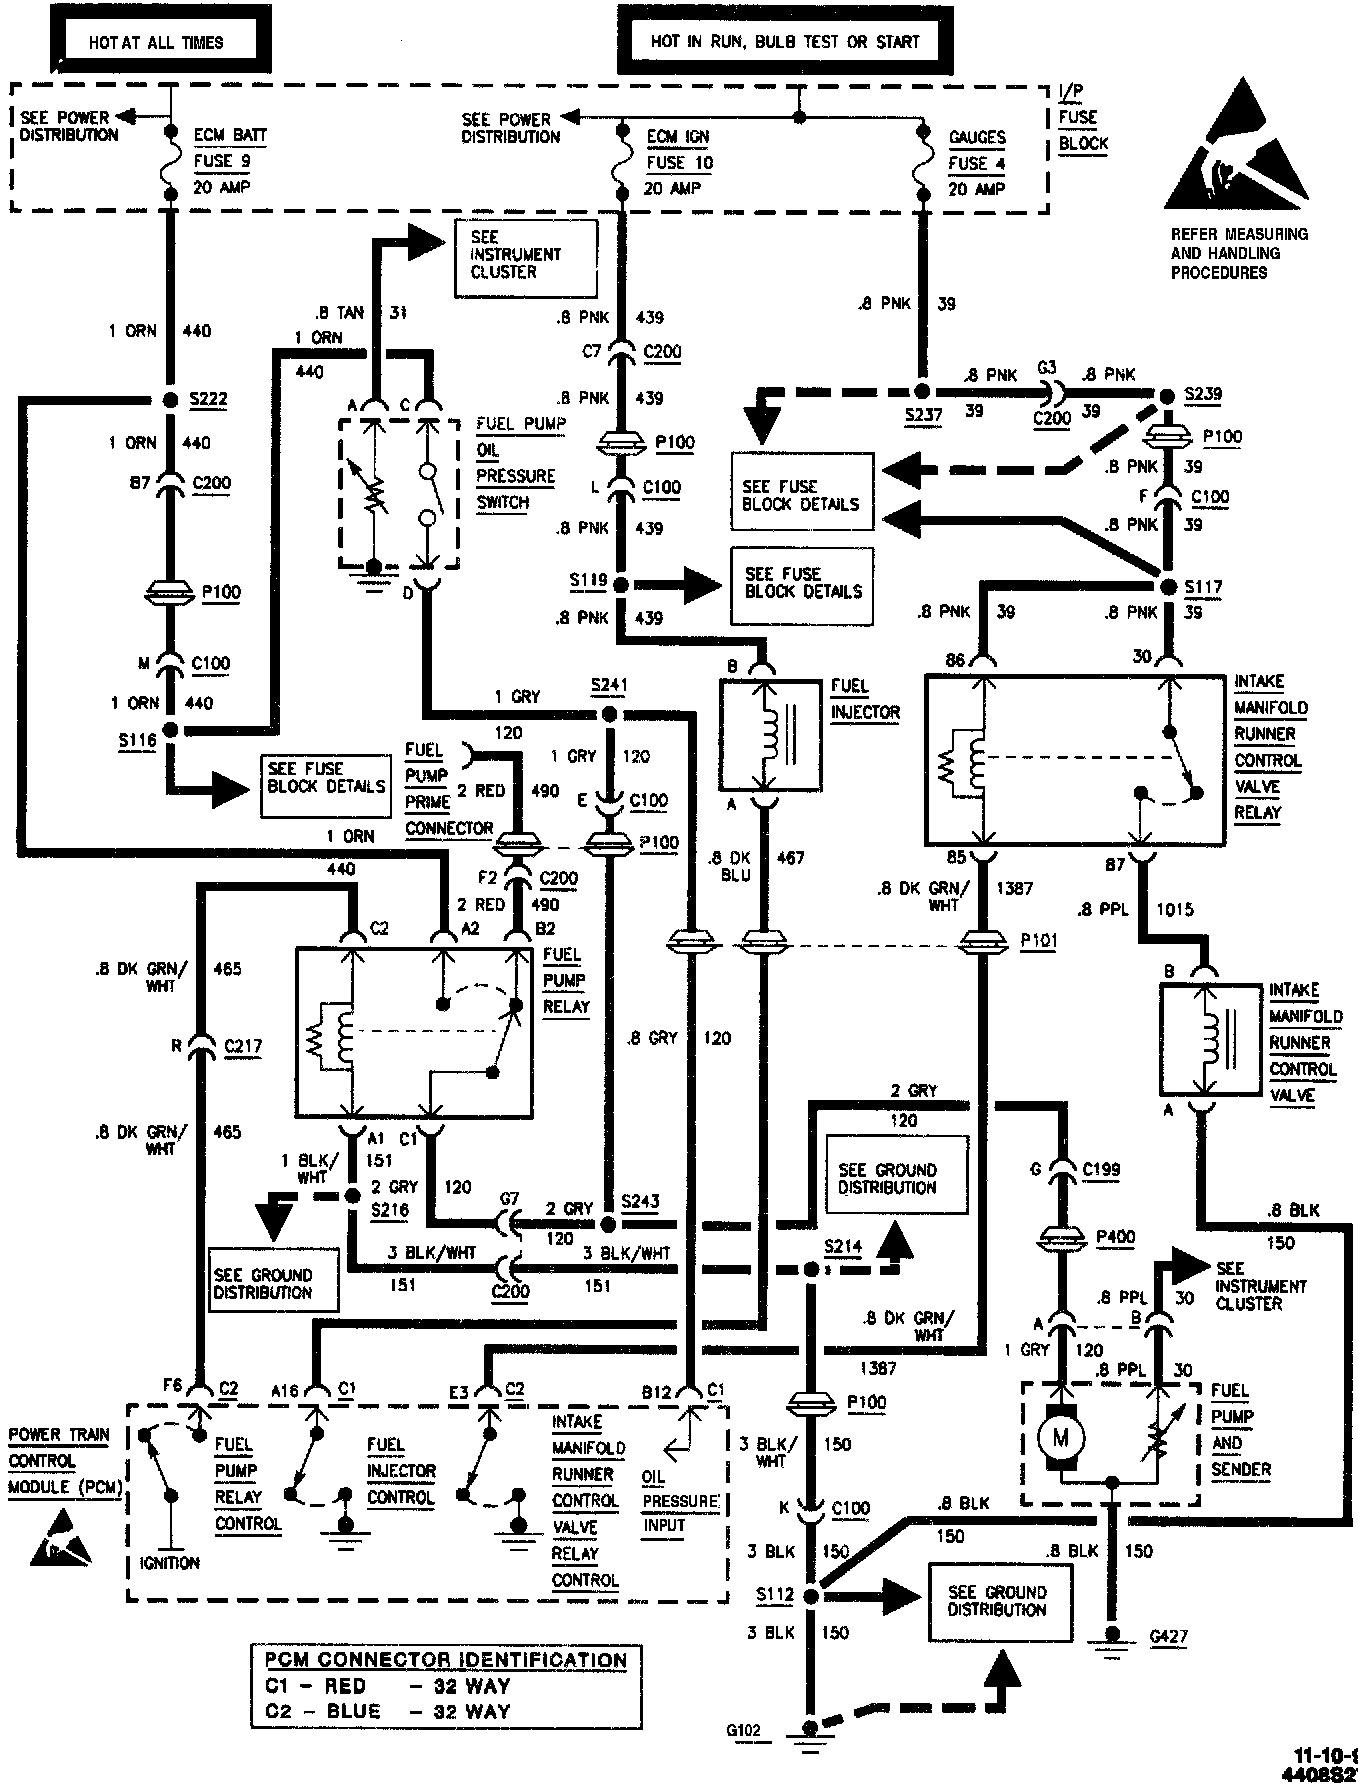 Speaker Wiring Diagram 1986 F150 Will Be A Thing 1978 Ford F 150 Engine 86 S10 Transmission 78 Truck Diagrams